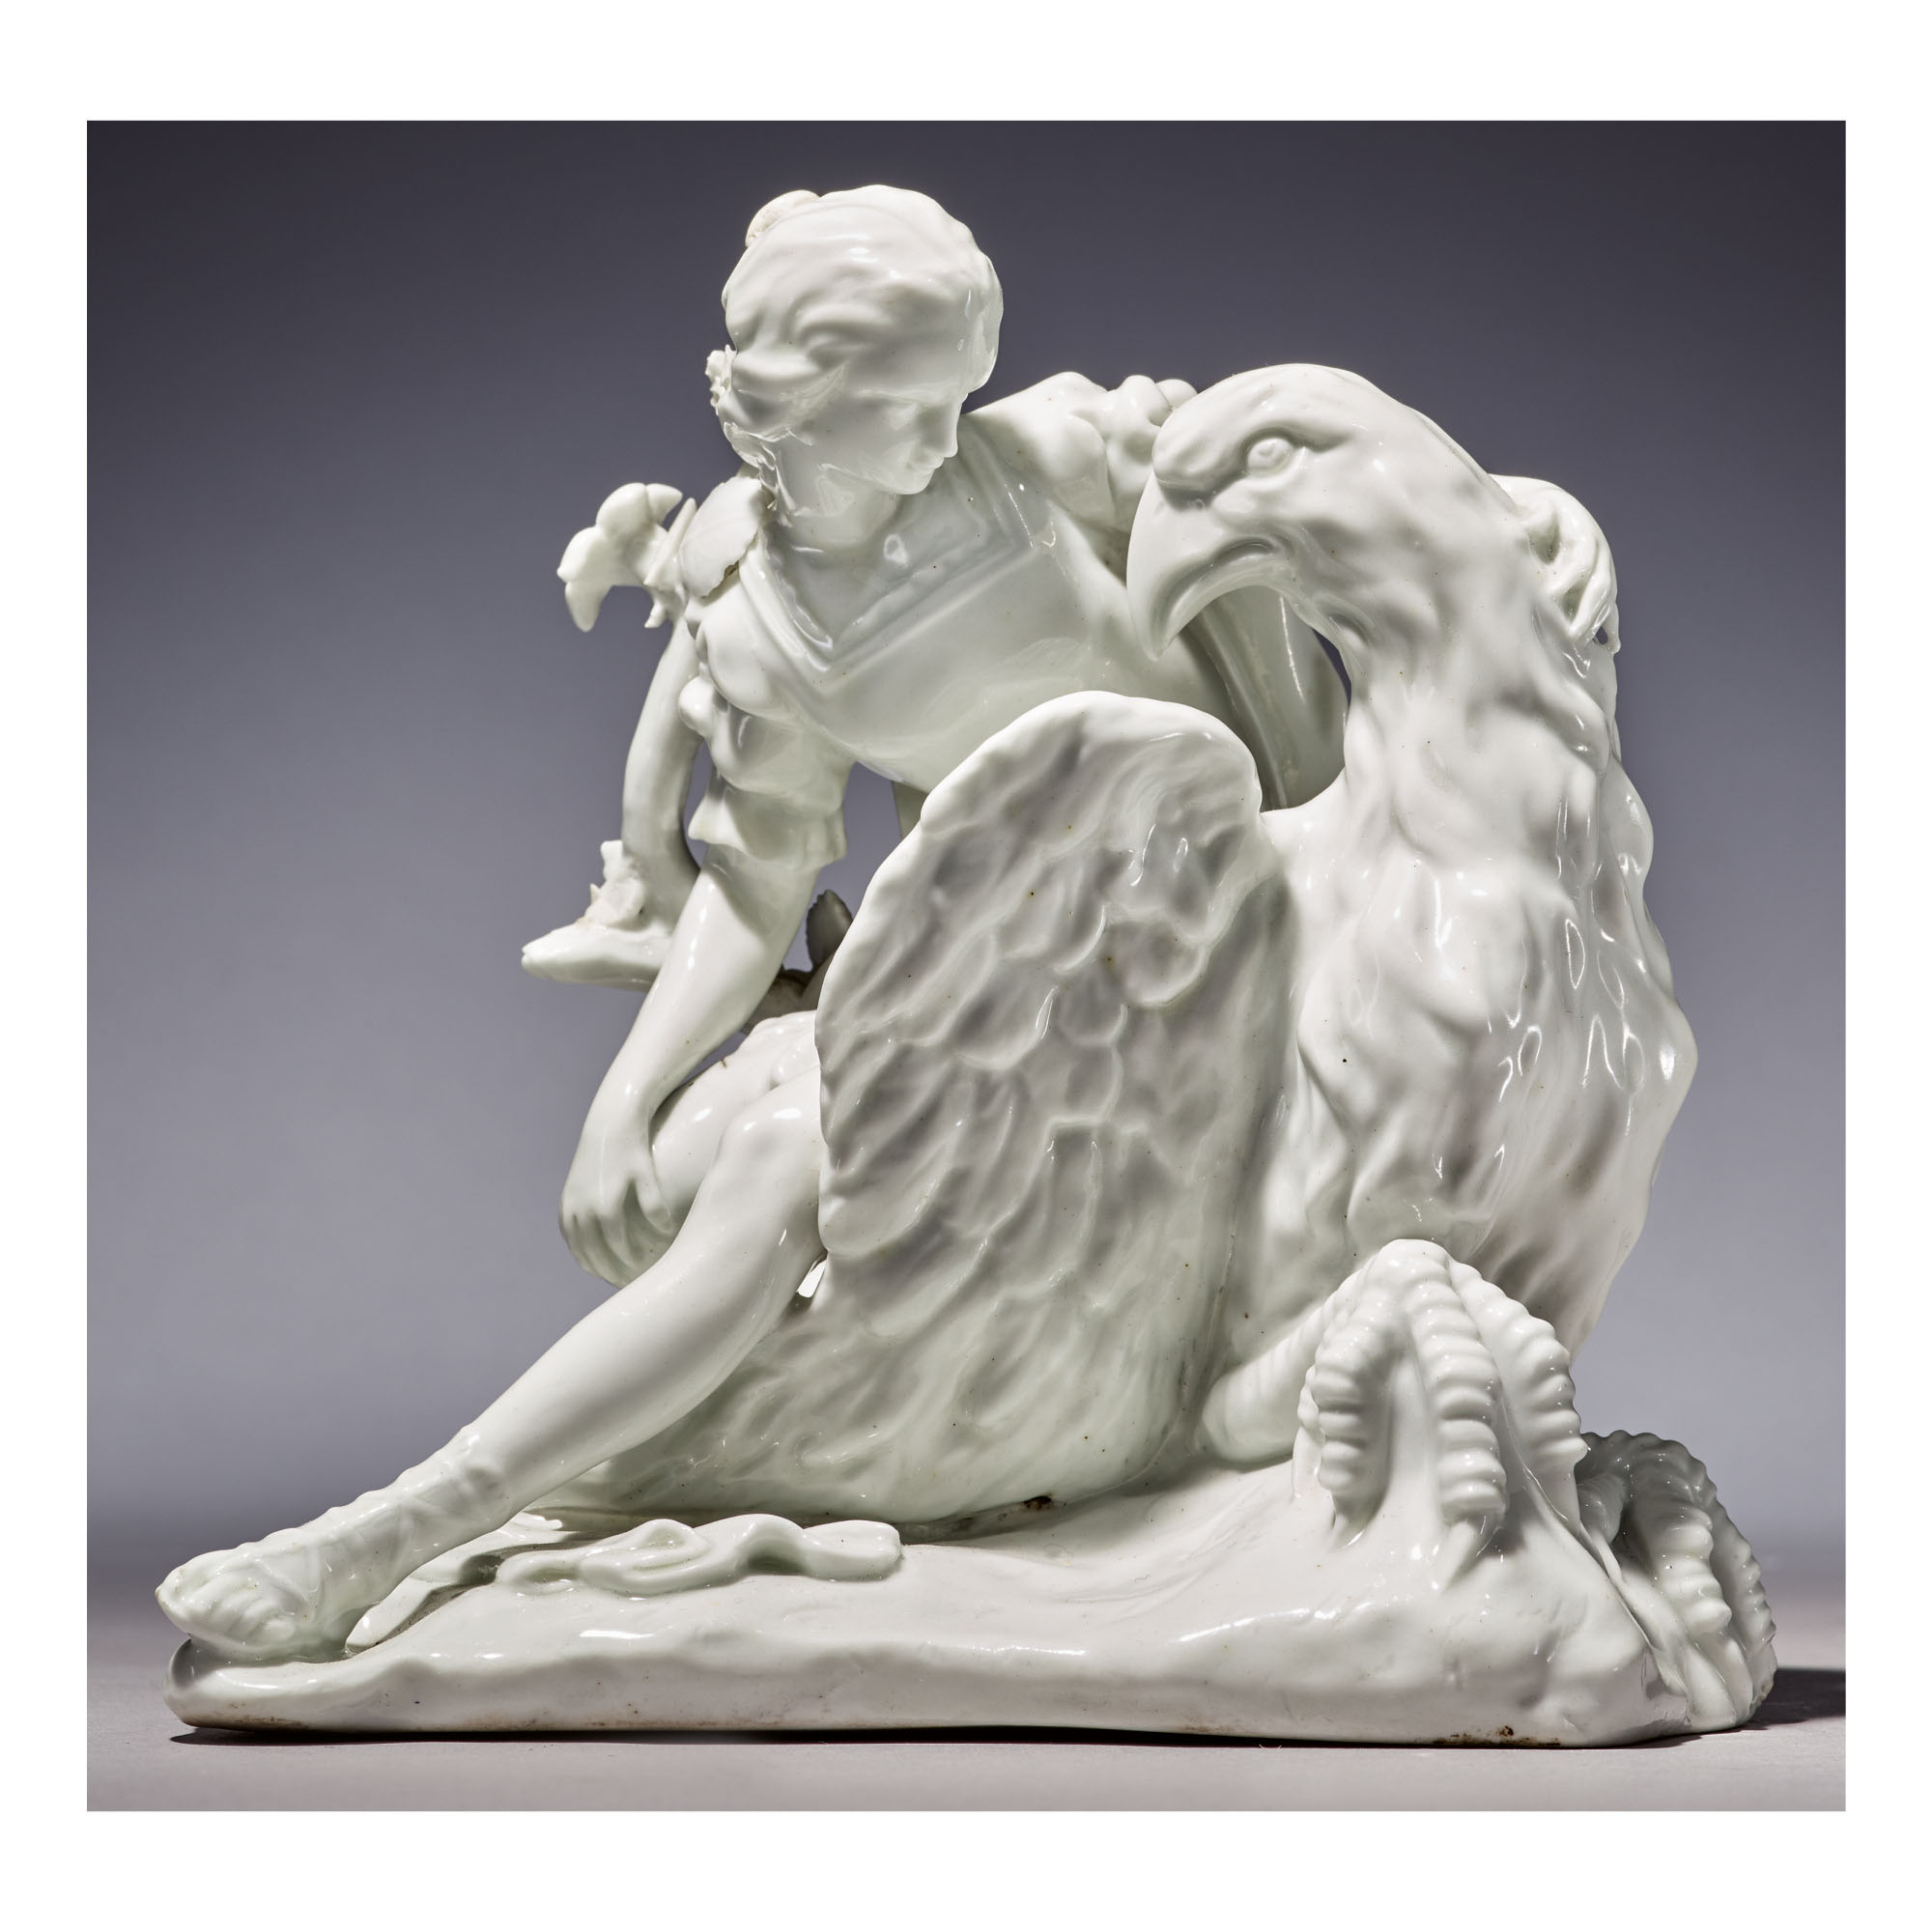 A RARE ST. JAMES'S (CHARLES GOUYN FACTORY) WHITE PORCELAIN GROUP OF GANYMEDE AND THE EAGLE CIRCA 1749-60